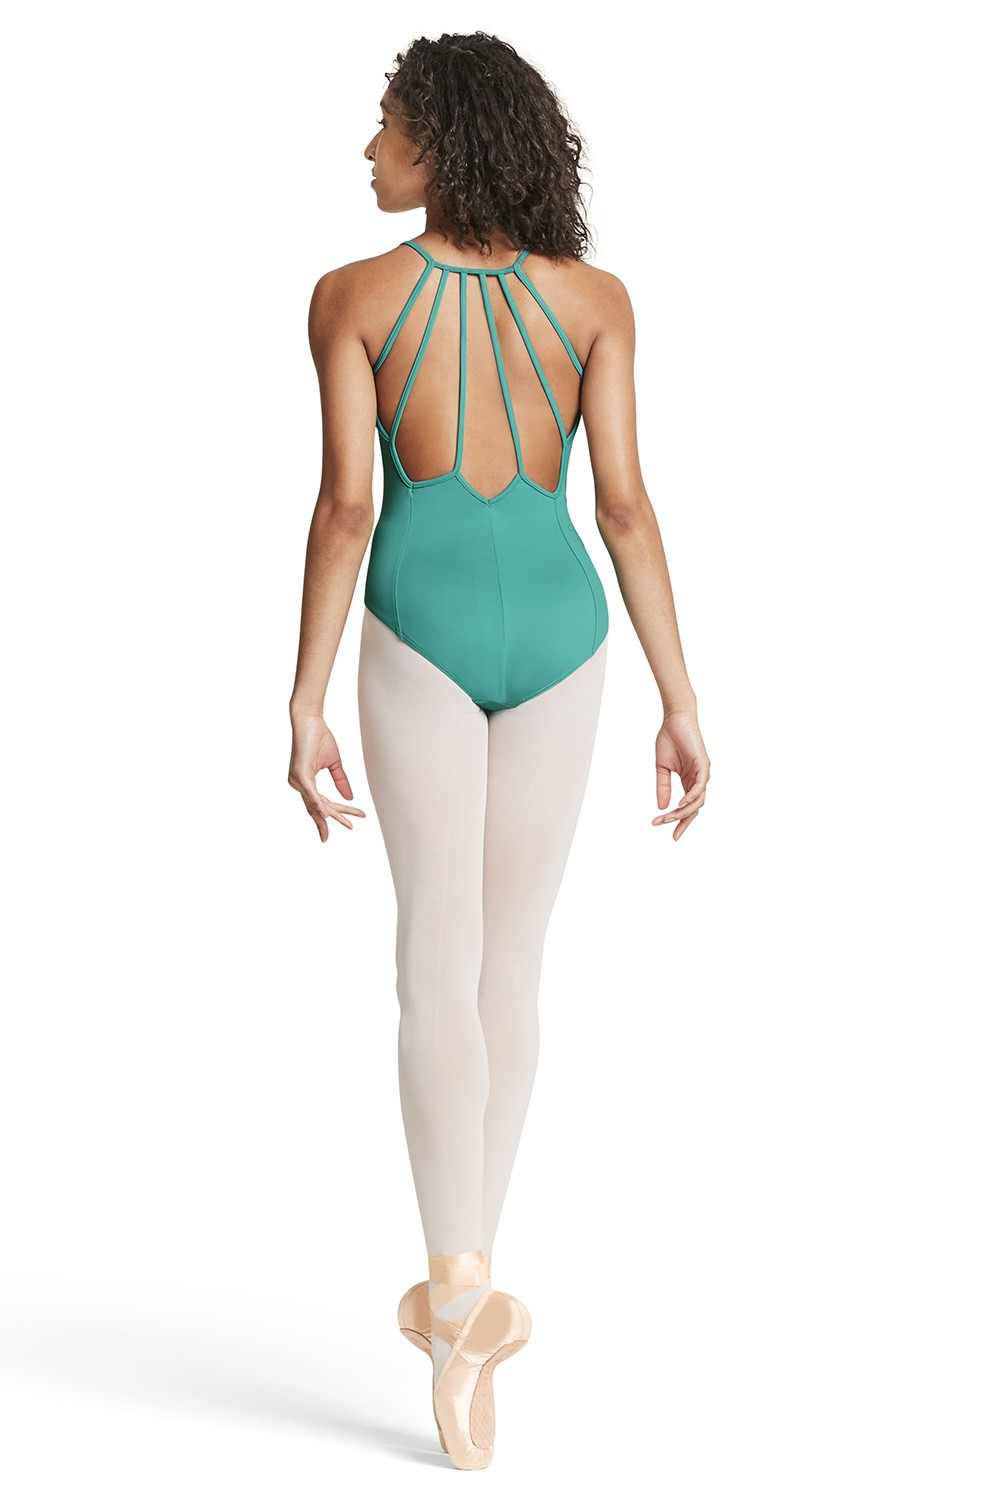 Strap Back Camisole Leotard Womens Camisole Leotards